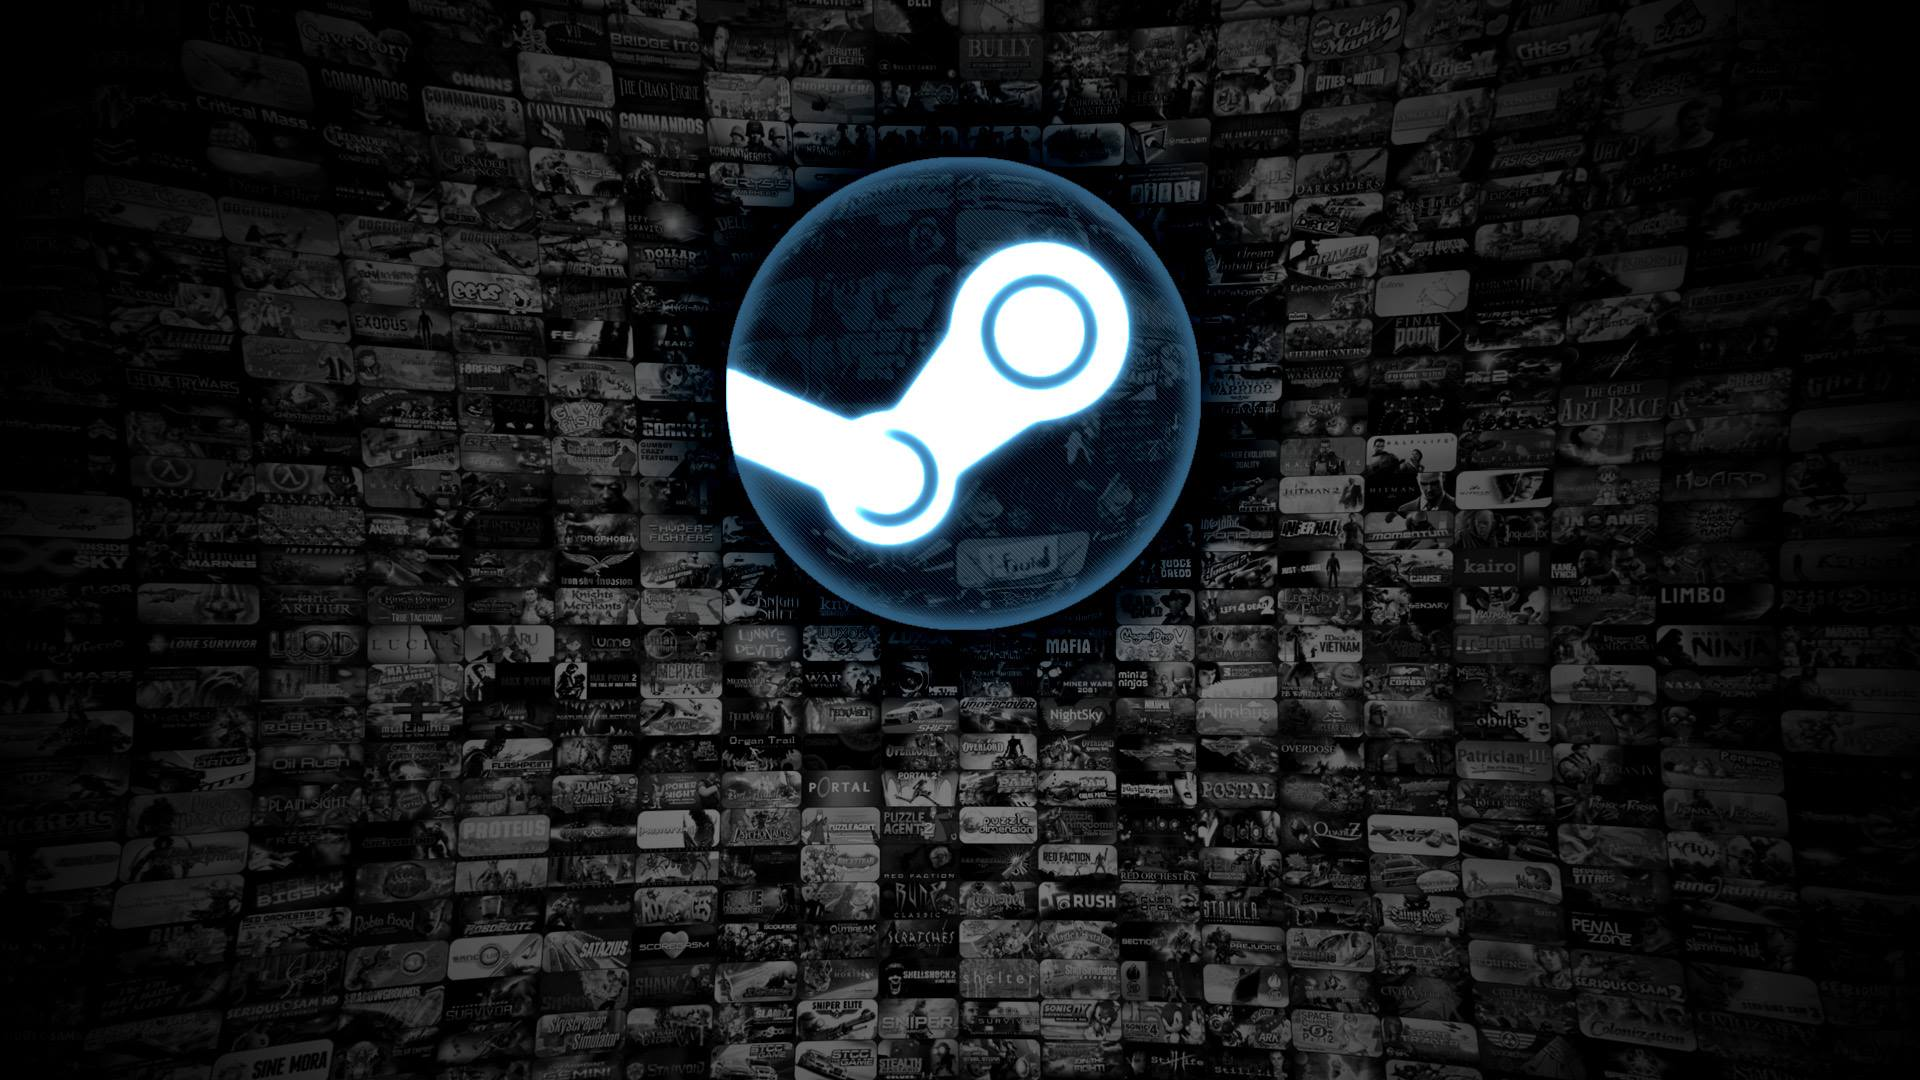 New discount and price-based filters hit Steam Wishlists